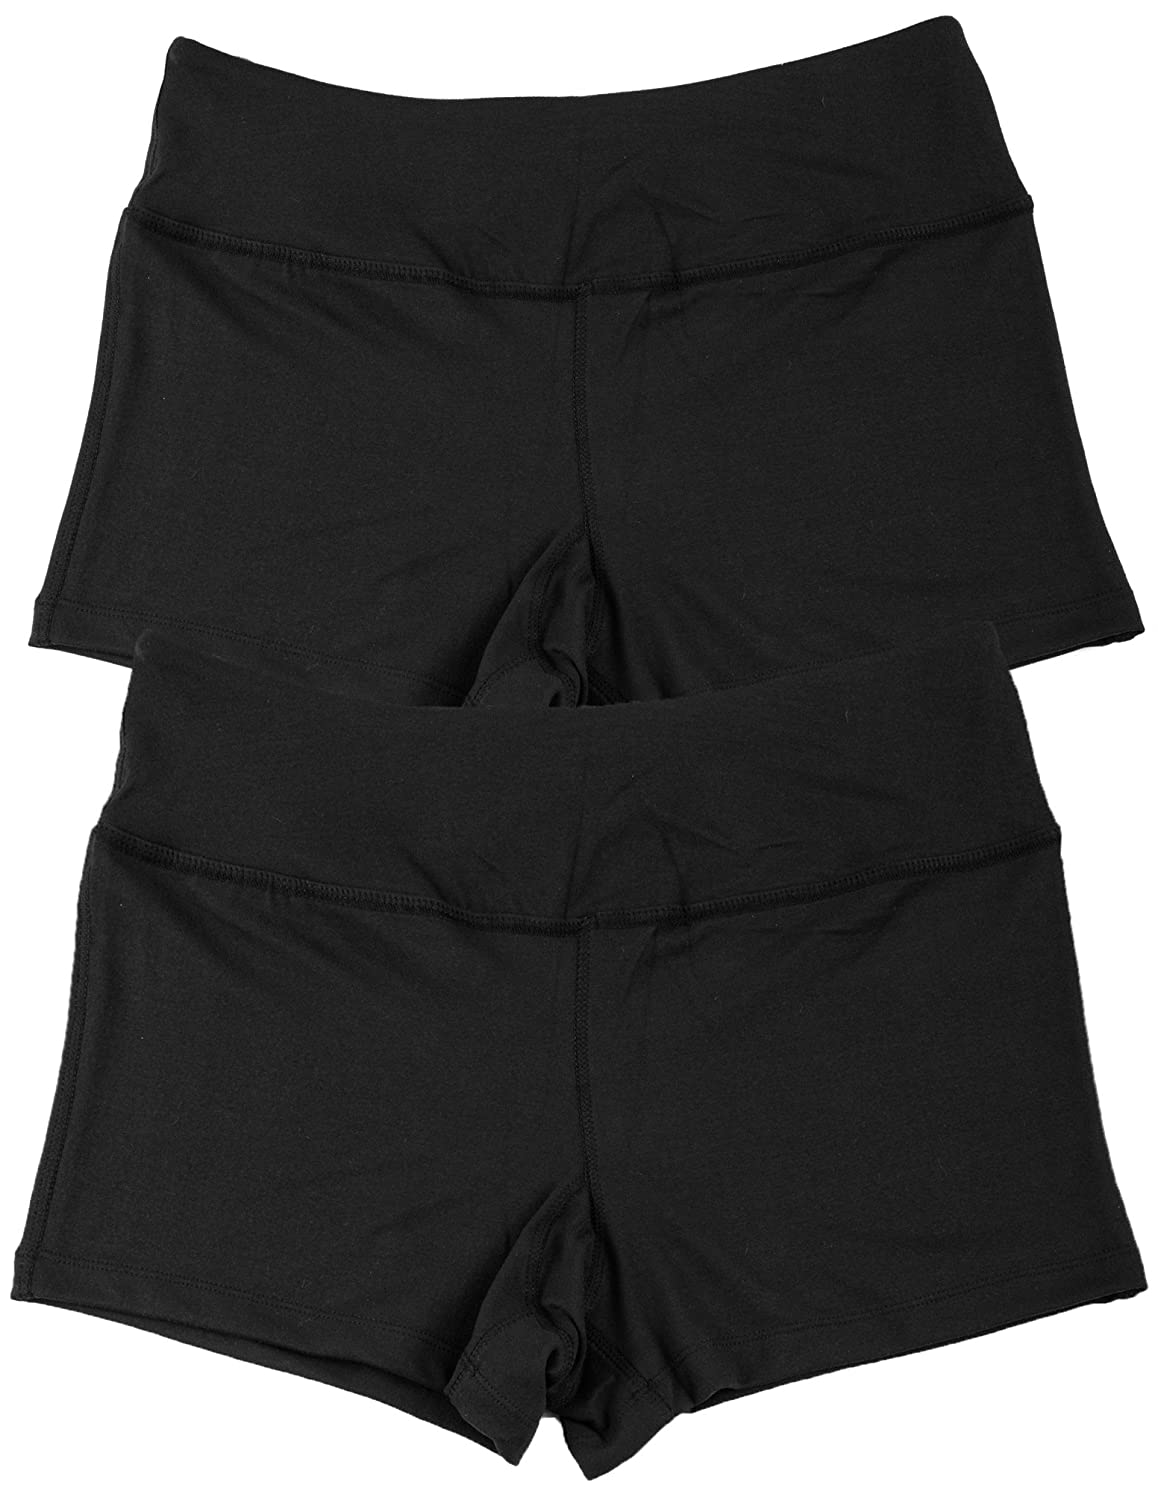 Mens Active Gym Shorts for Hot Yoga Fitness with 3.25 Inseam